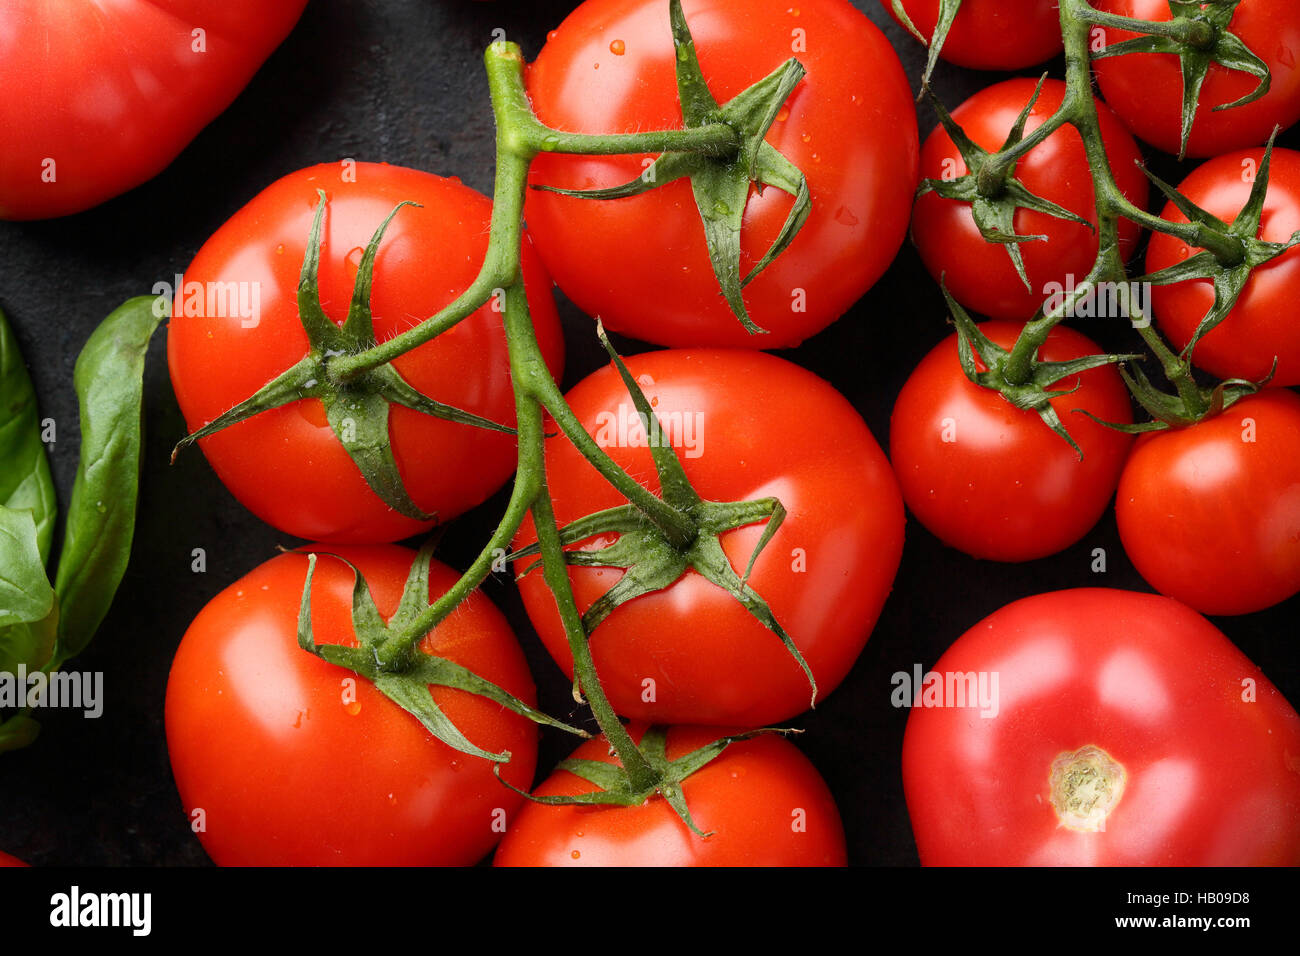 Branch of red tomatoes on black, food top view - Stock Image